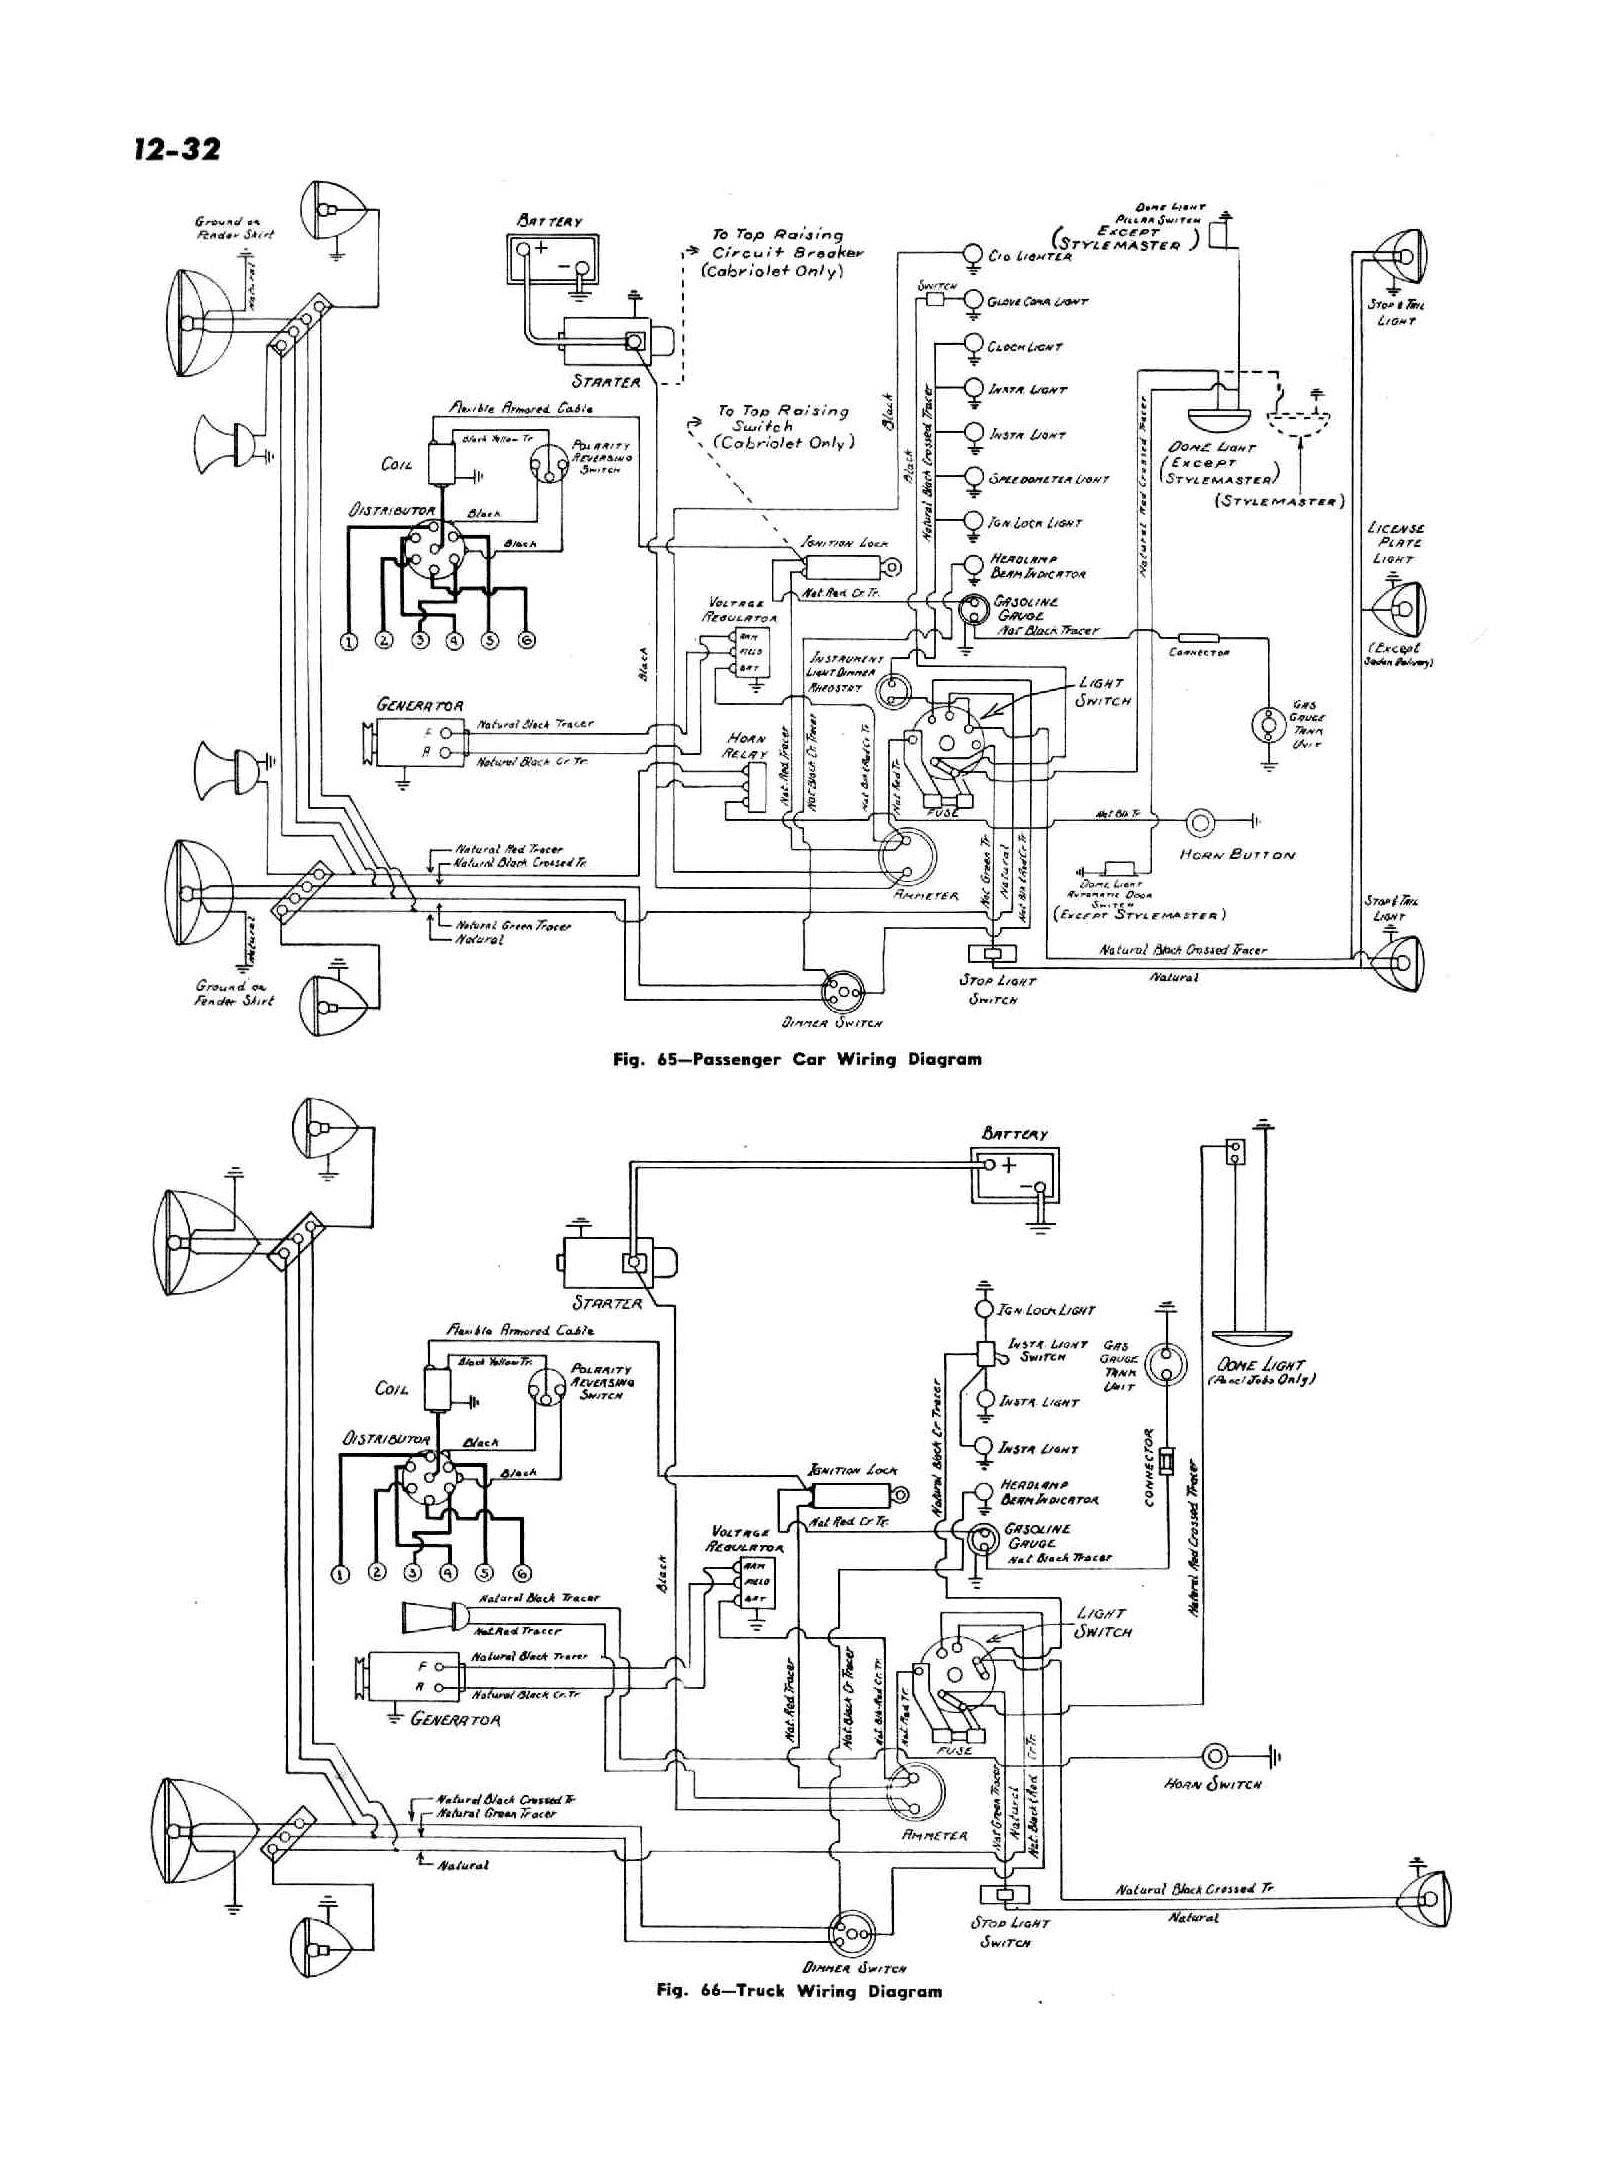 1979 Chevy Nova Wiring Diagram Schematic Diagrams 1970 Engine